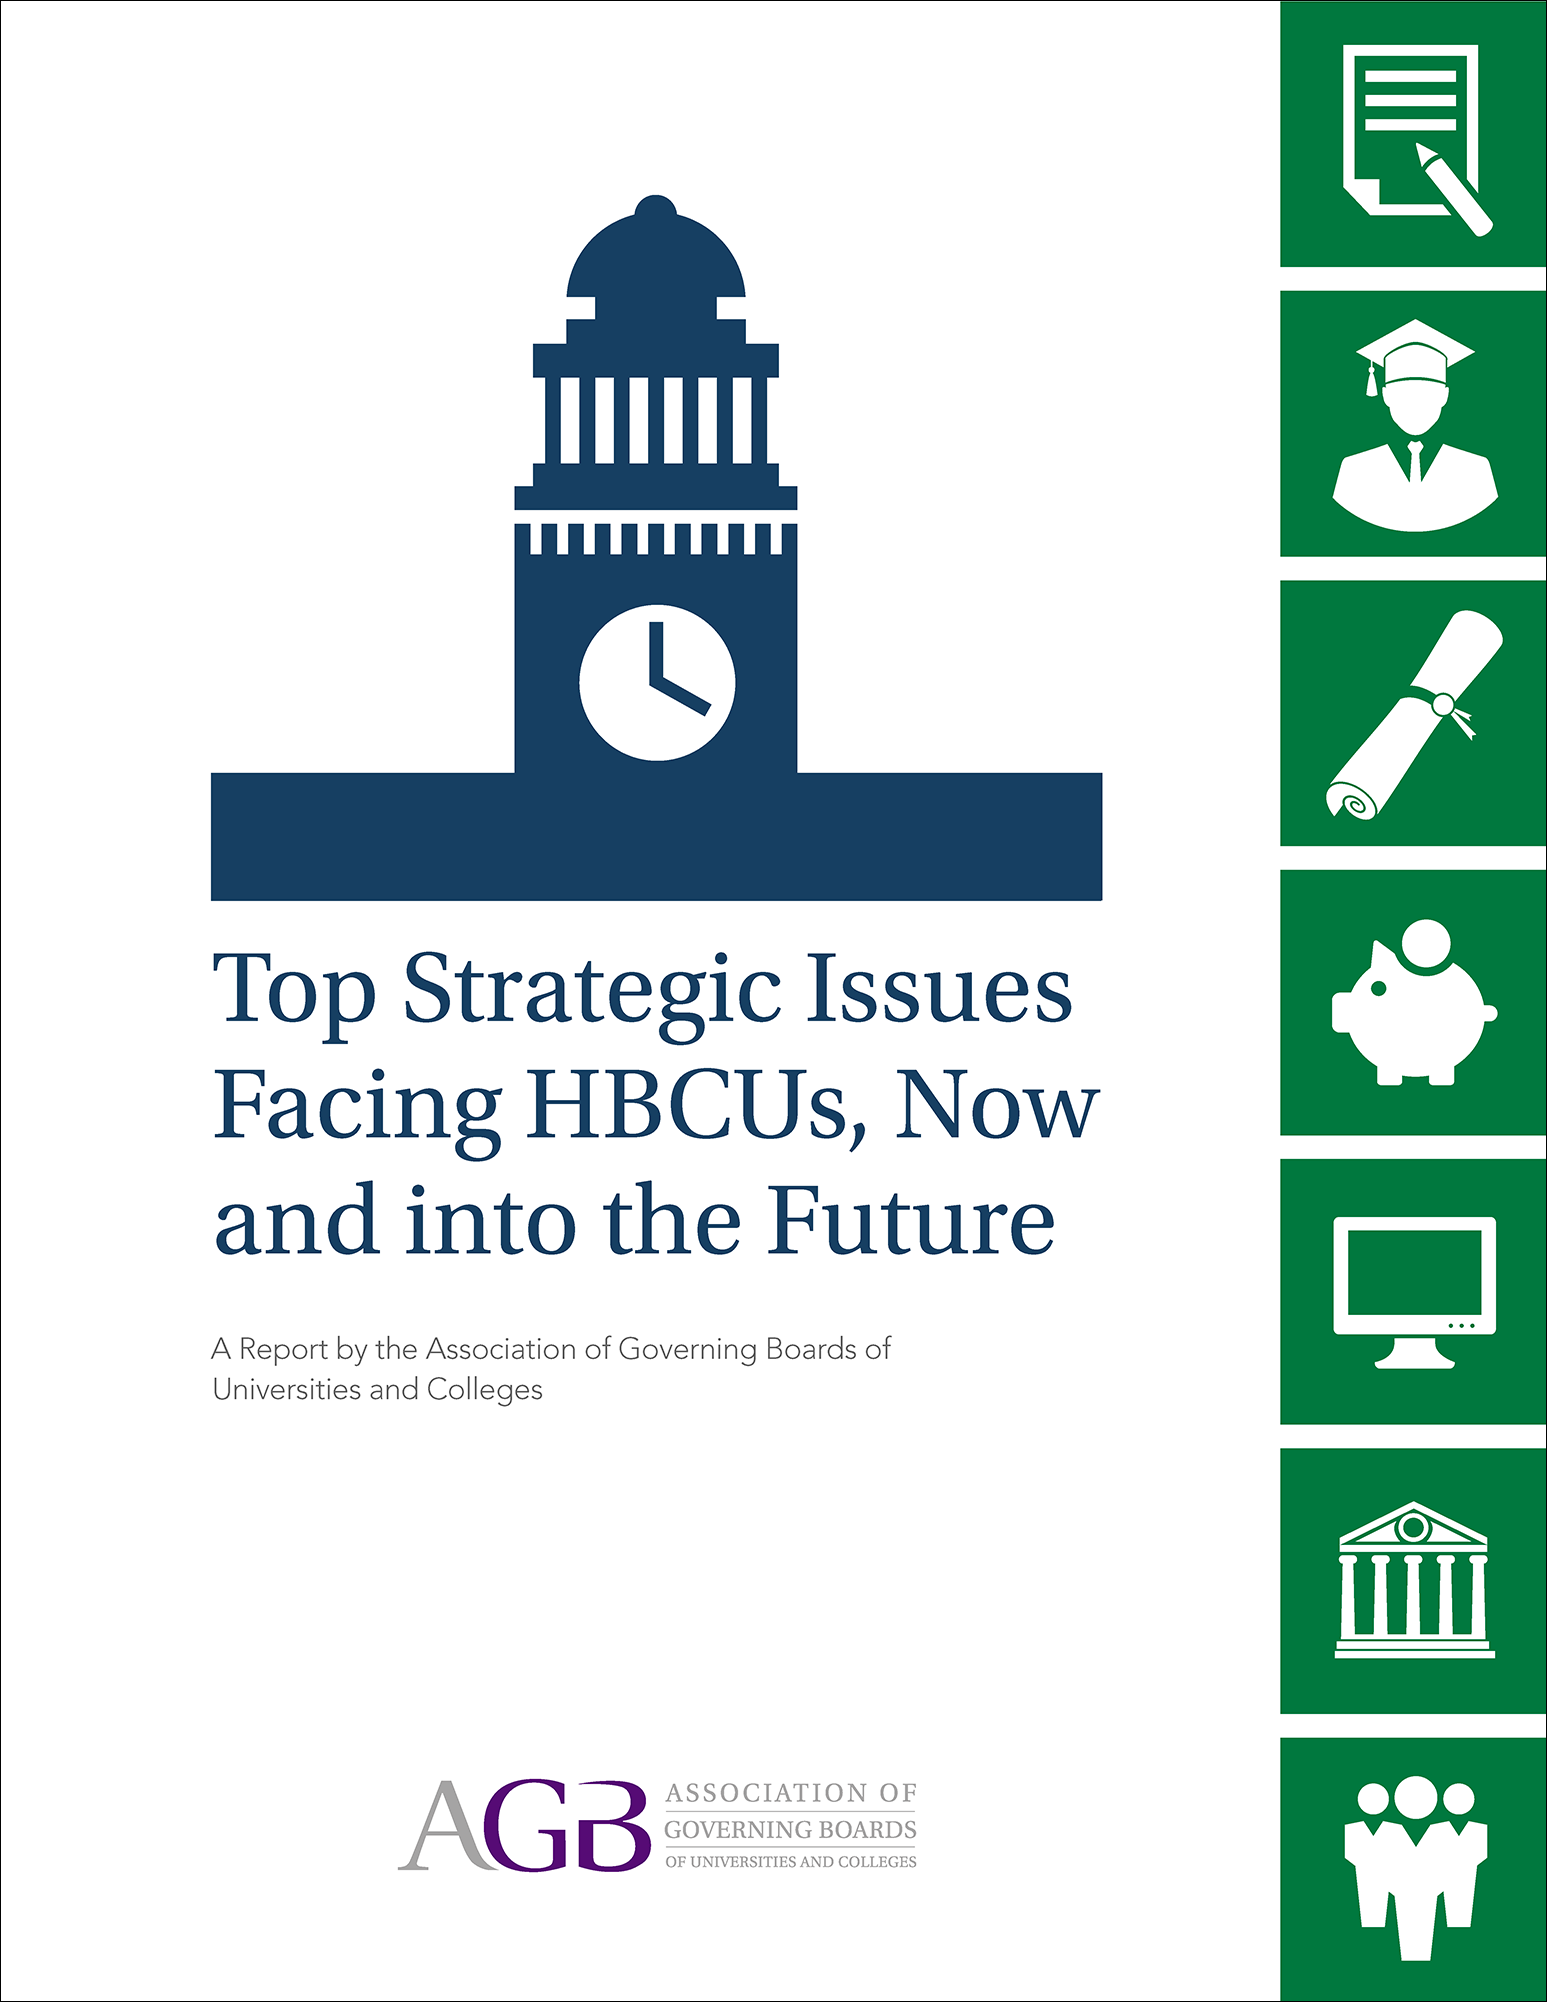 Top Strategic Issues Facing HBCUs, Now and into the Future